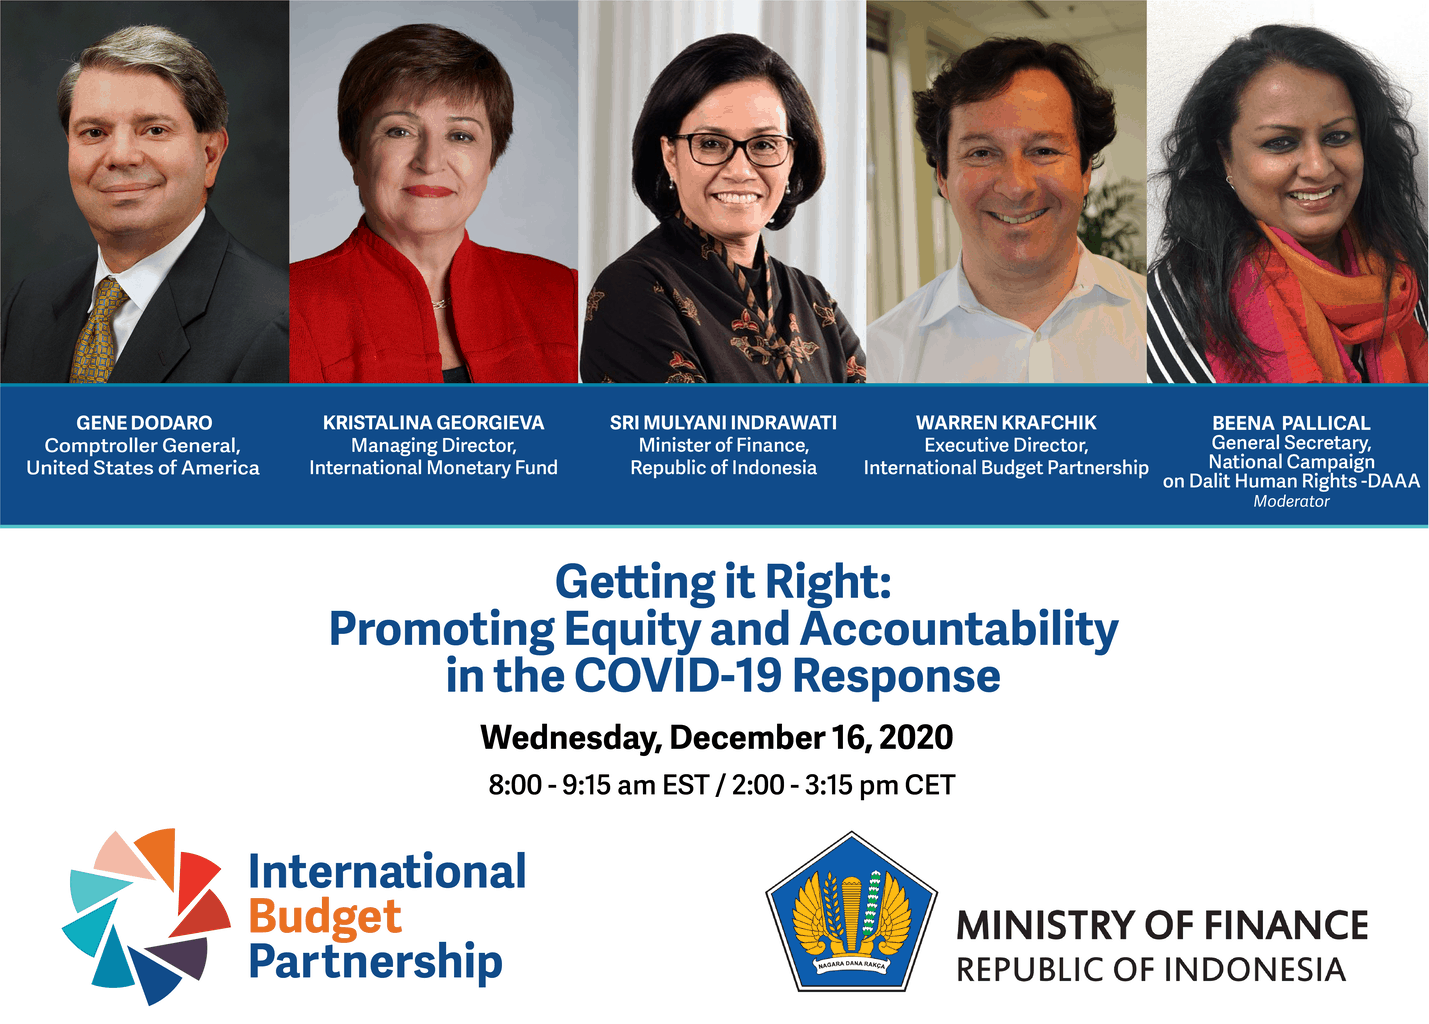 In case you missed it: high-level panel on promoting equity and accountability in the COVID-19 response